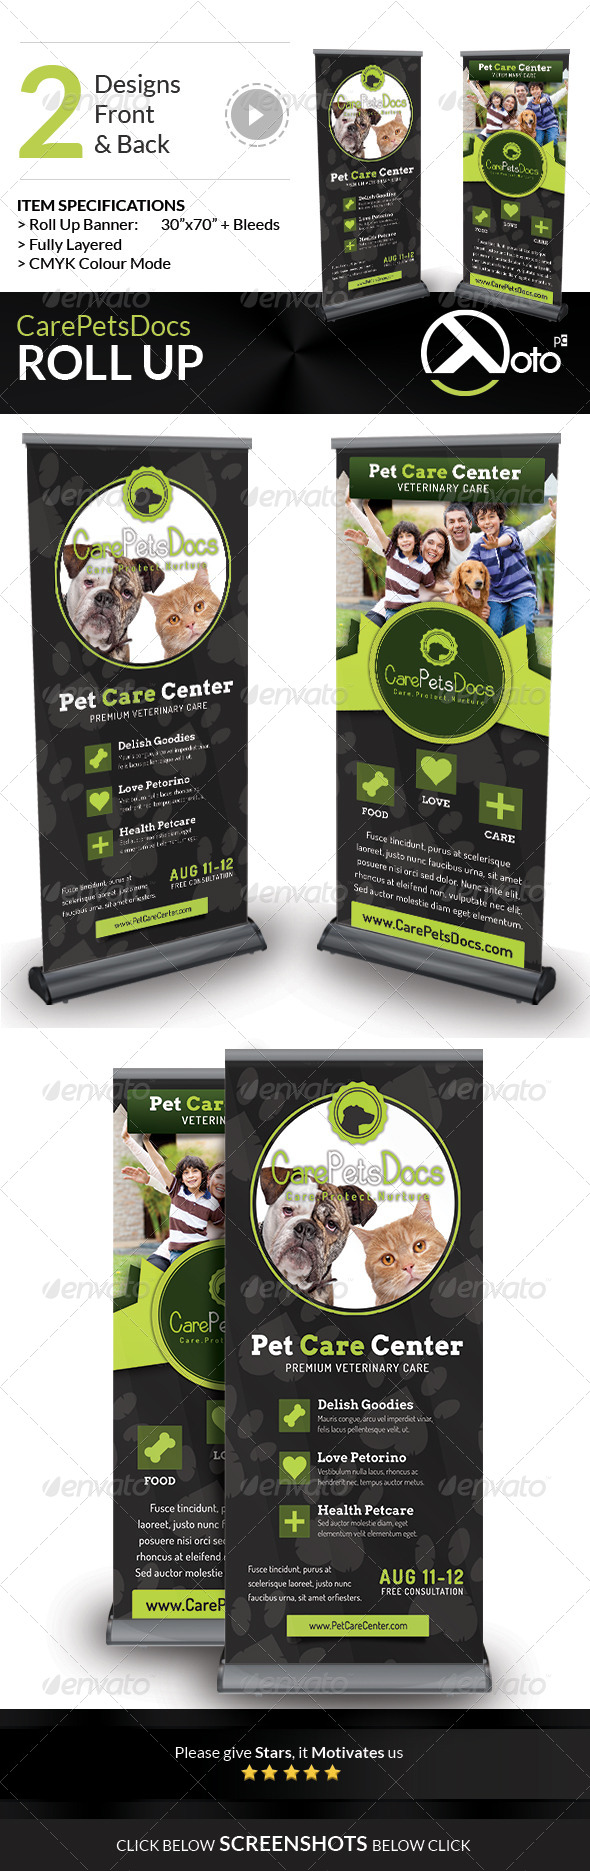 GraphicRiver Care Pets Docs Veterinary Roll Up Banner 8545564